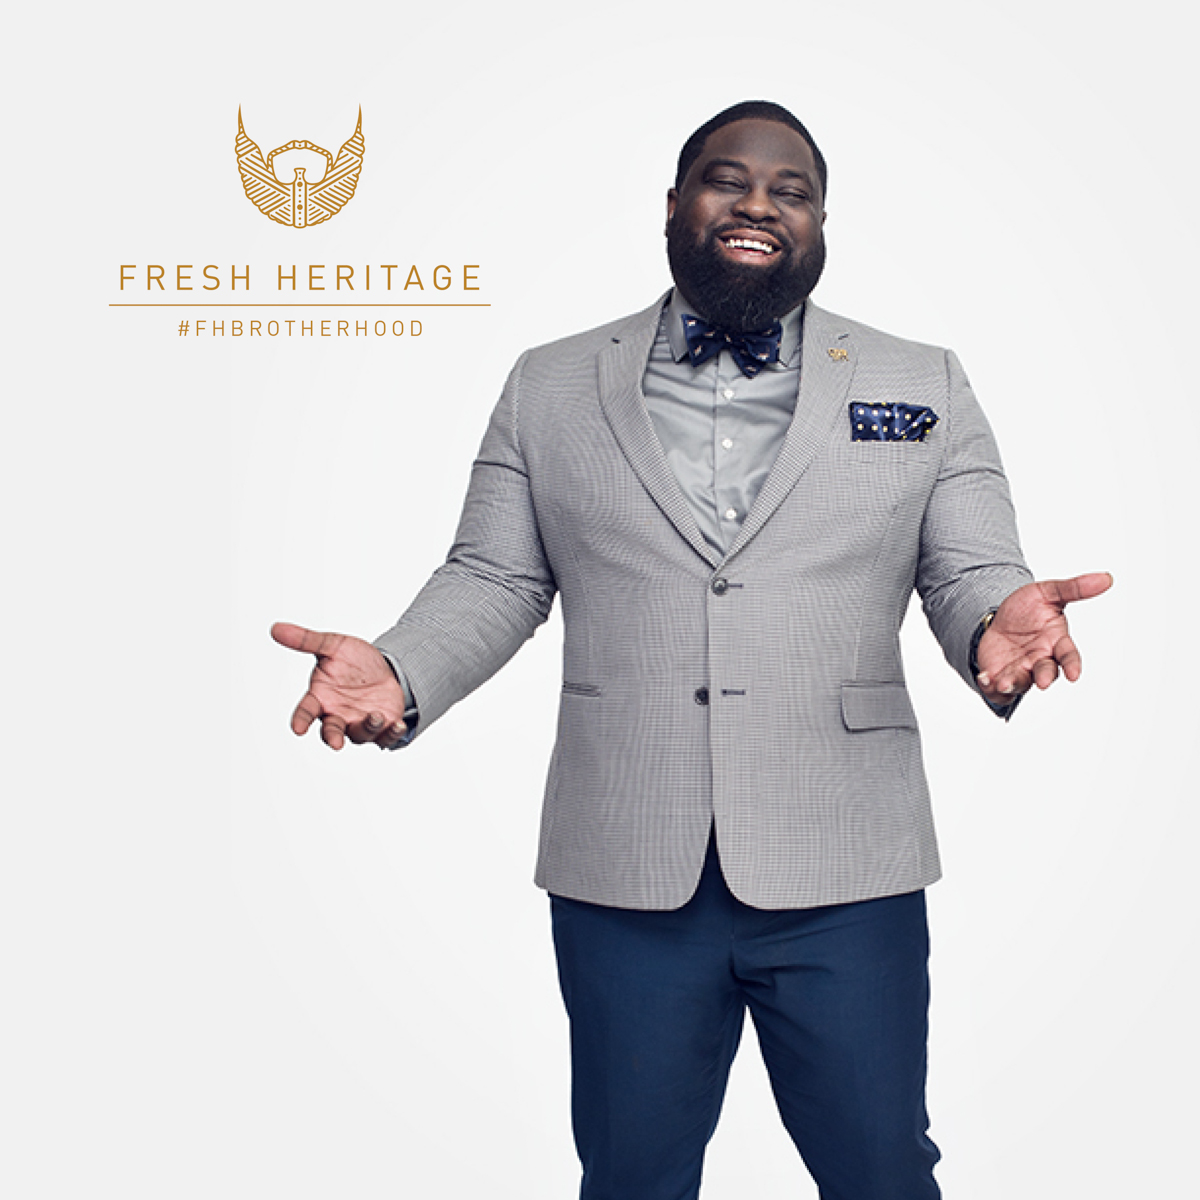 African American Men Advertise Beard Oil - Stephen Wilson Photography - Fashion  - Fresh Heritage - Atlanta -